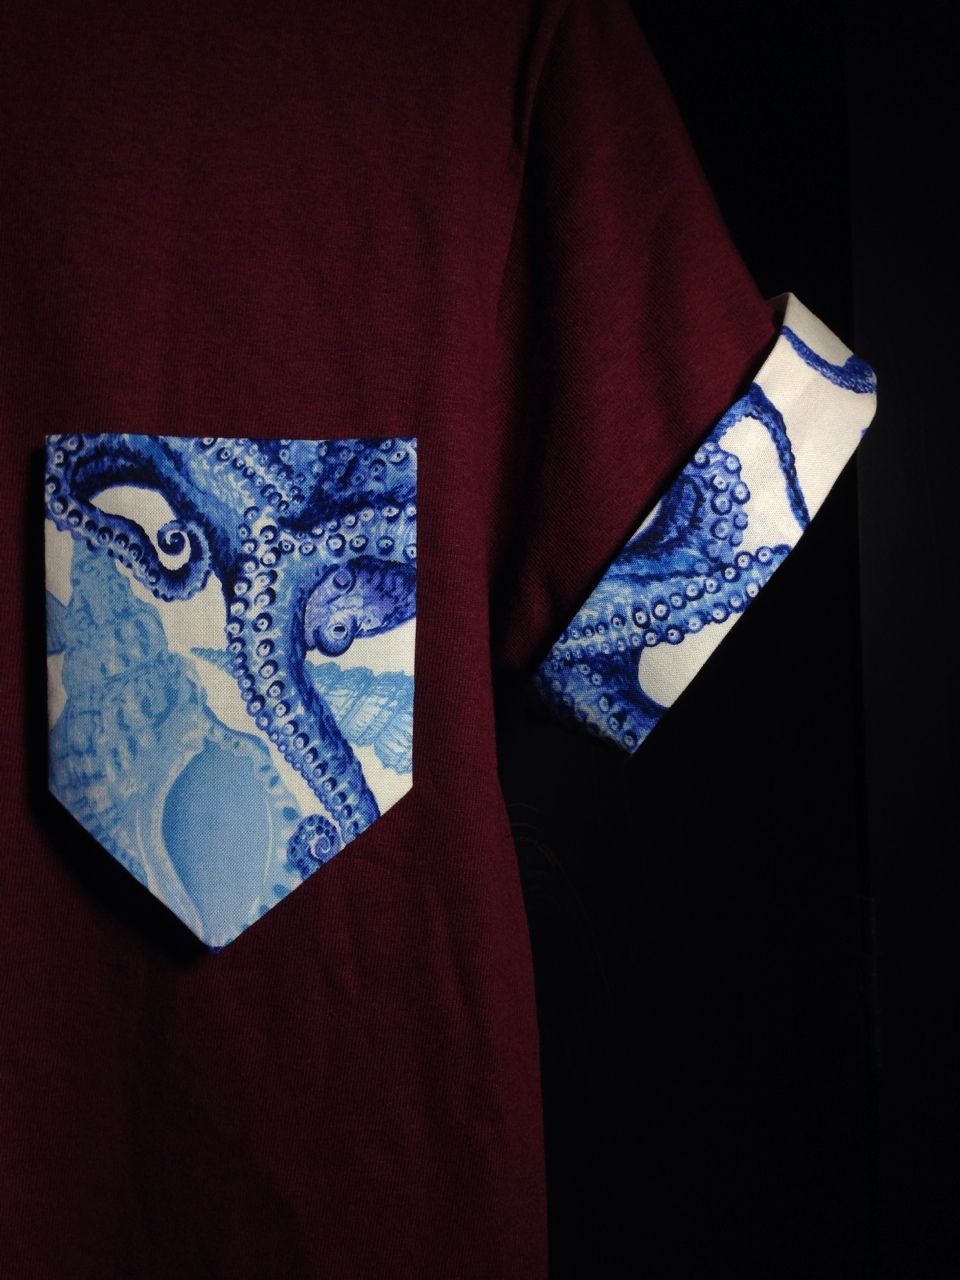 New Octopus print pocket & sleeve cuffs cotton-poly blend double stitch reinforcement sleeve cuffs can flip down and be hidden or worn up to reveal the pattern each shirt/pattern is cut, stitched, and placed by me. **all mens sizes. get yours today! *These shirts are NOT premade. Each...